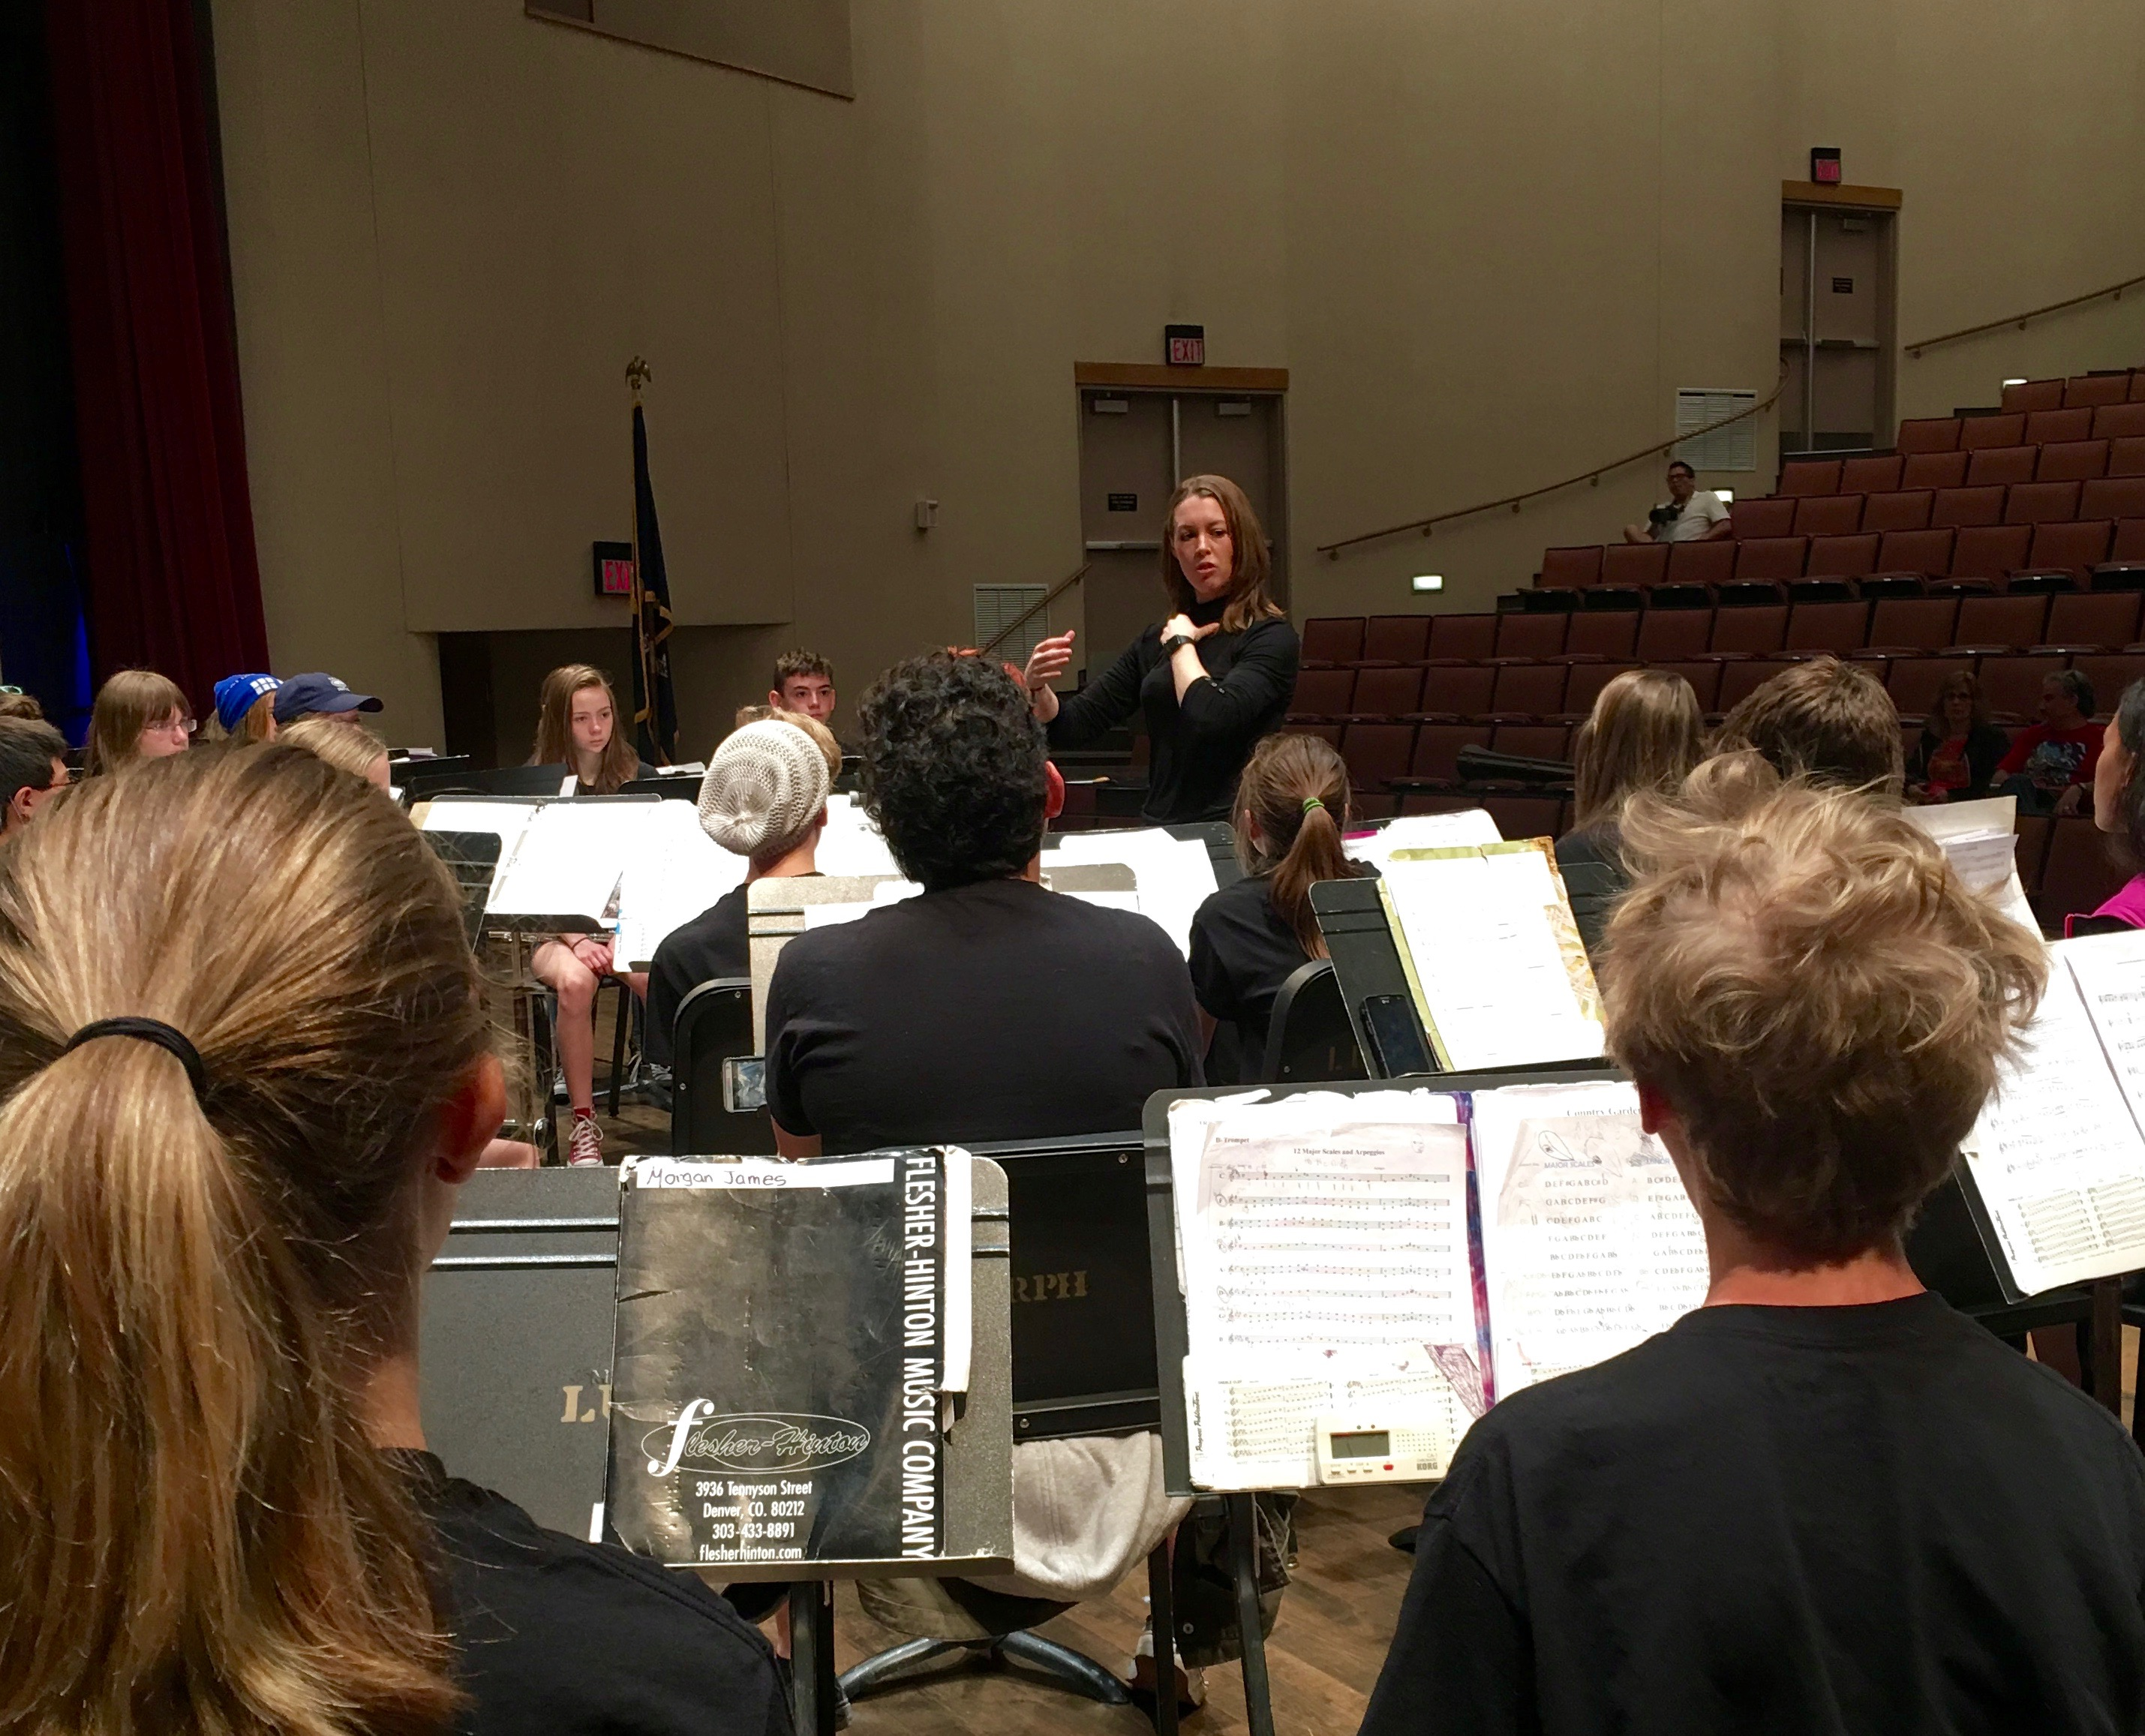 Dr. Serena Weren, Director of Bands at Loyola University works with the Concert Band in clinic.works with the